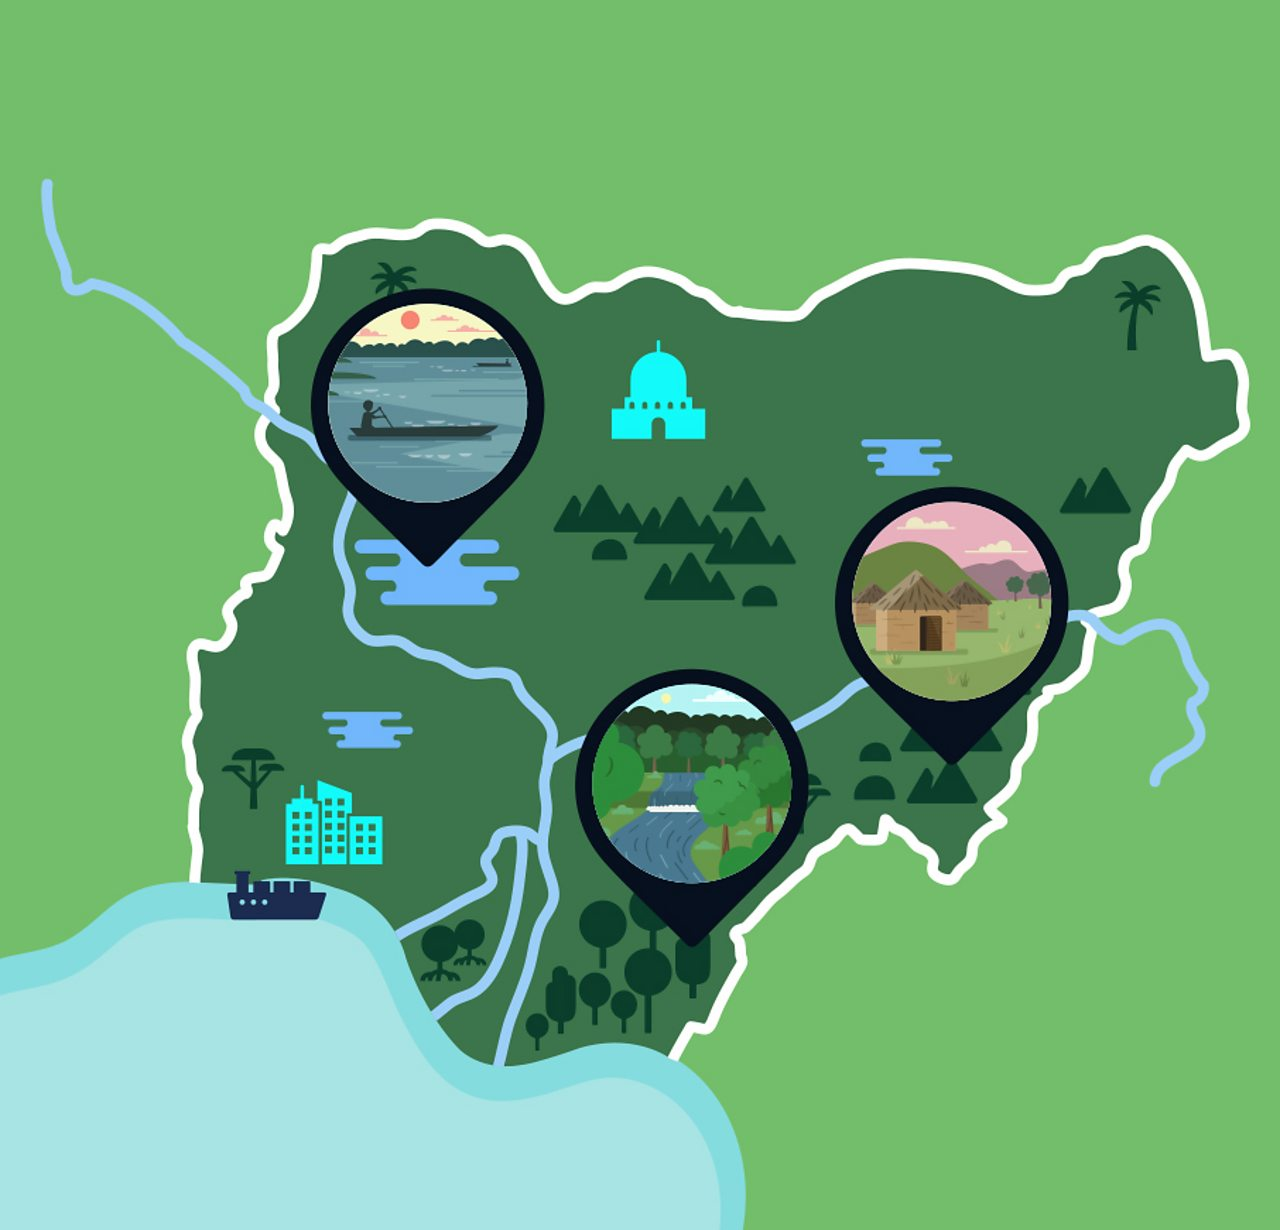 A map of Nigeria showing its rivers, forests and cities